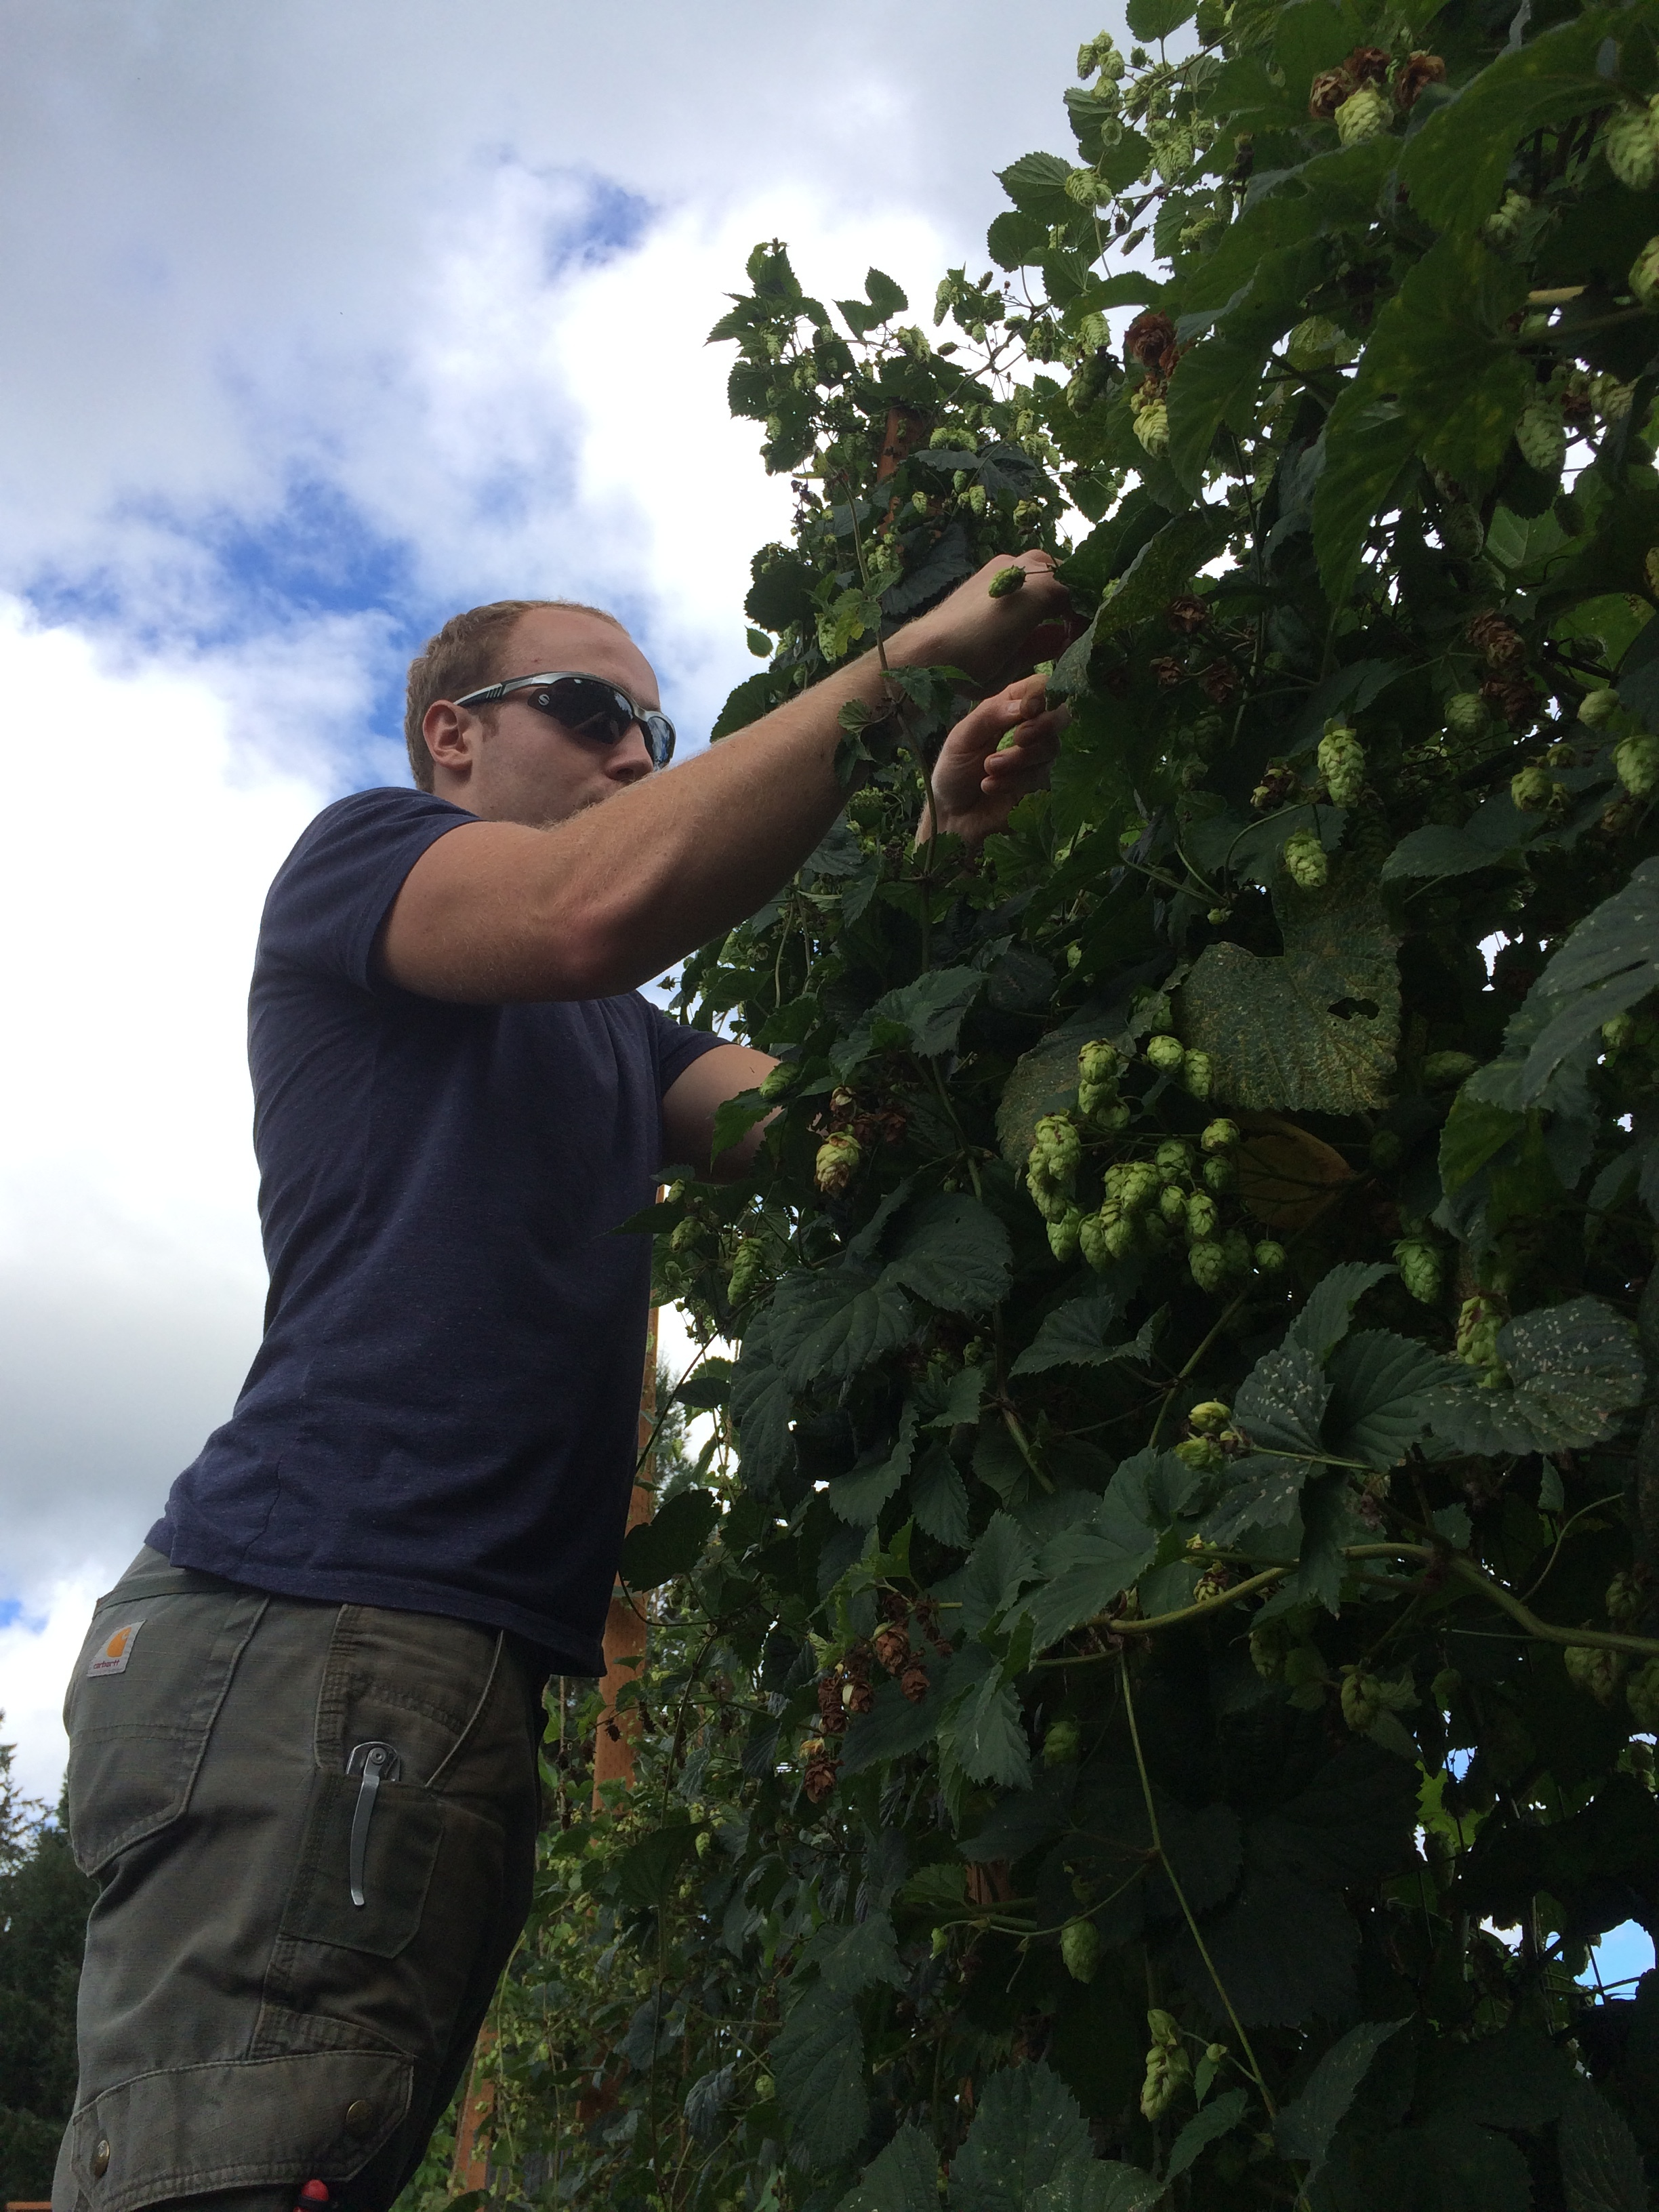 Andrew hand picking hops for a local brewery.